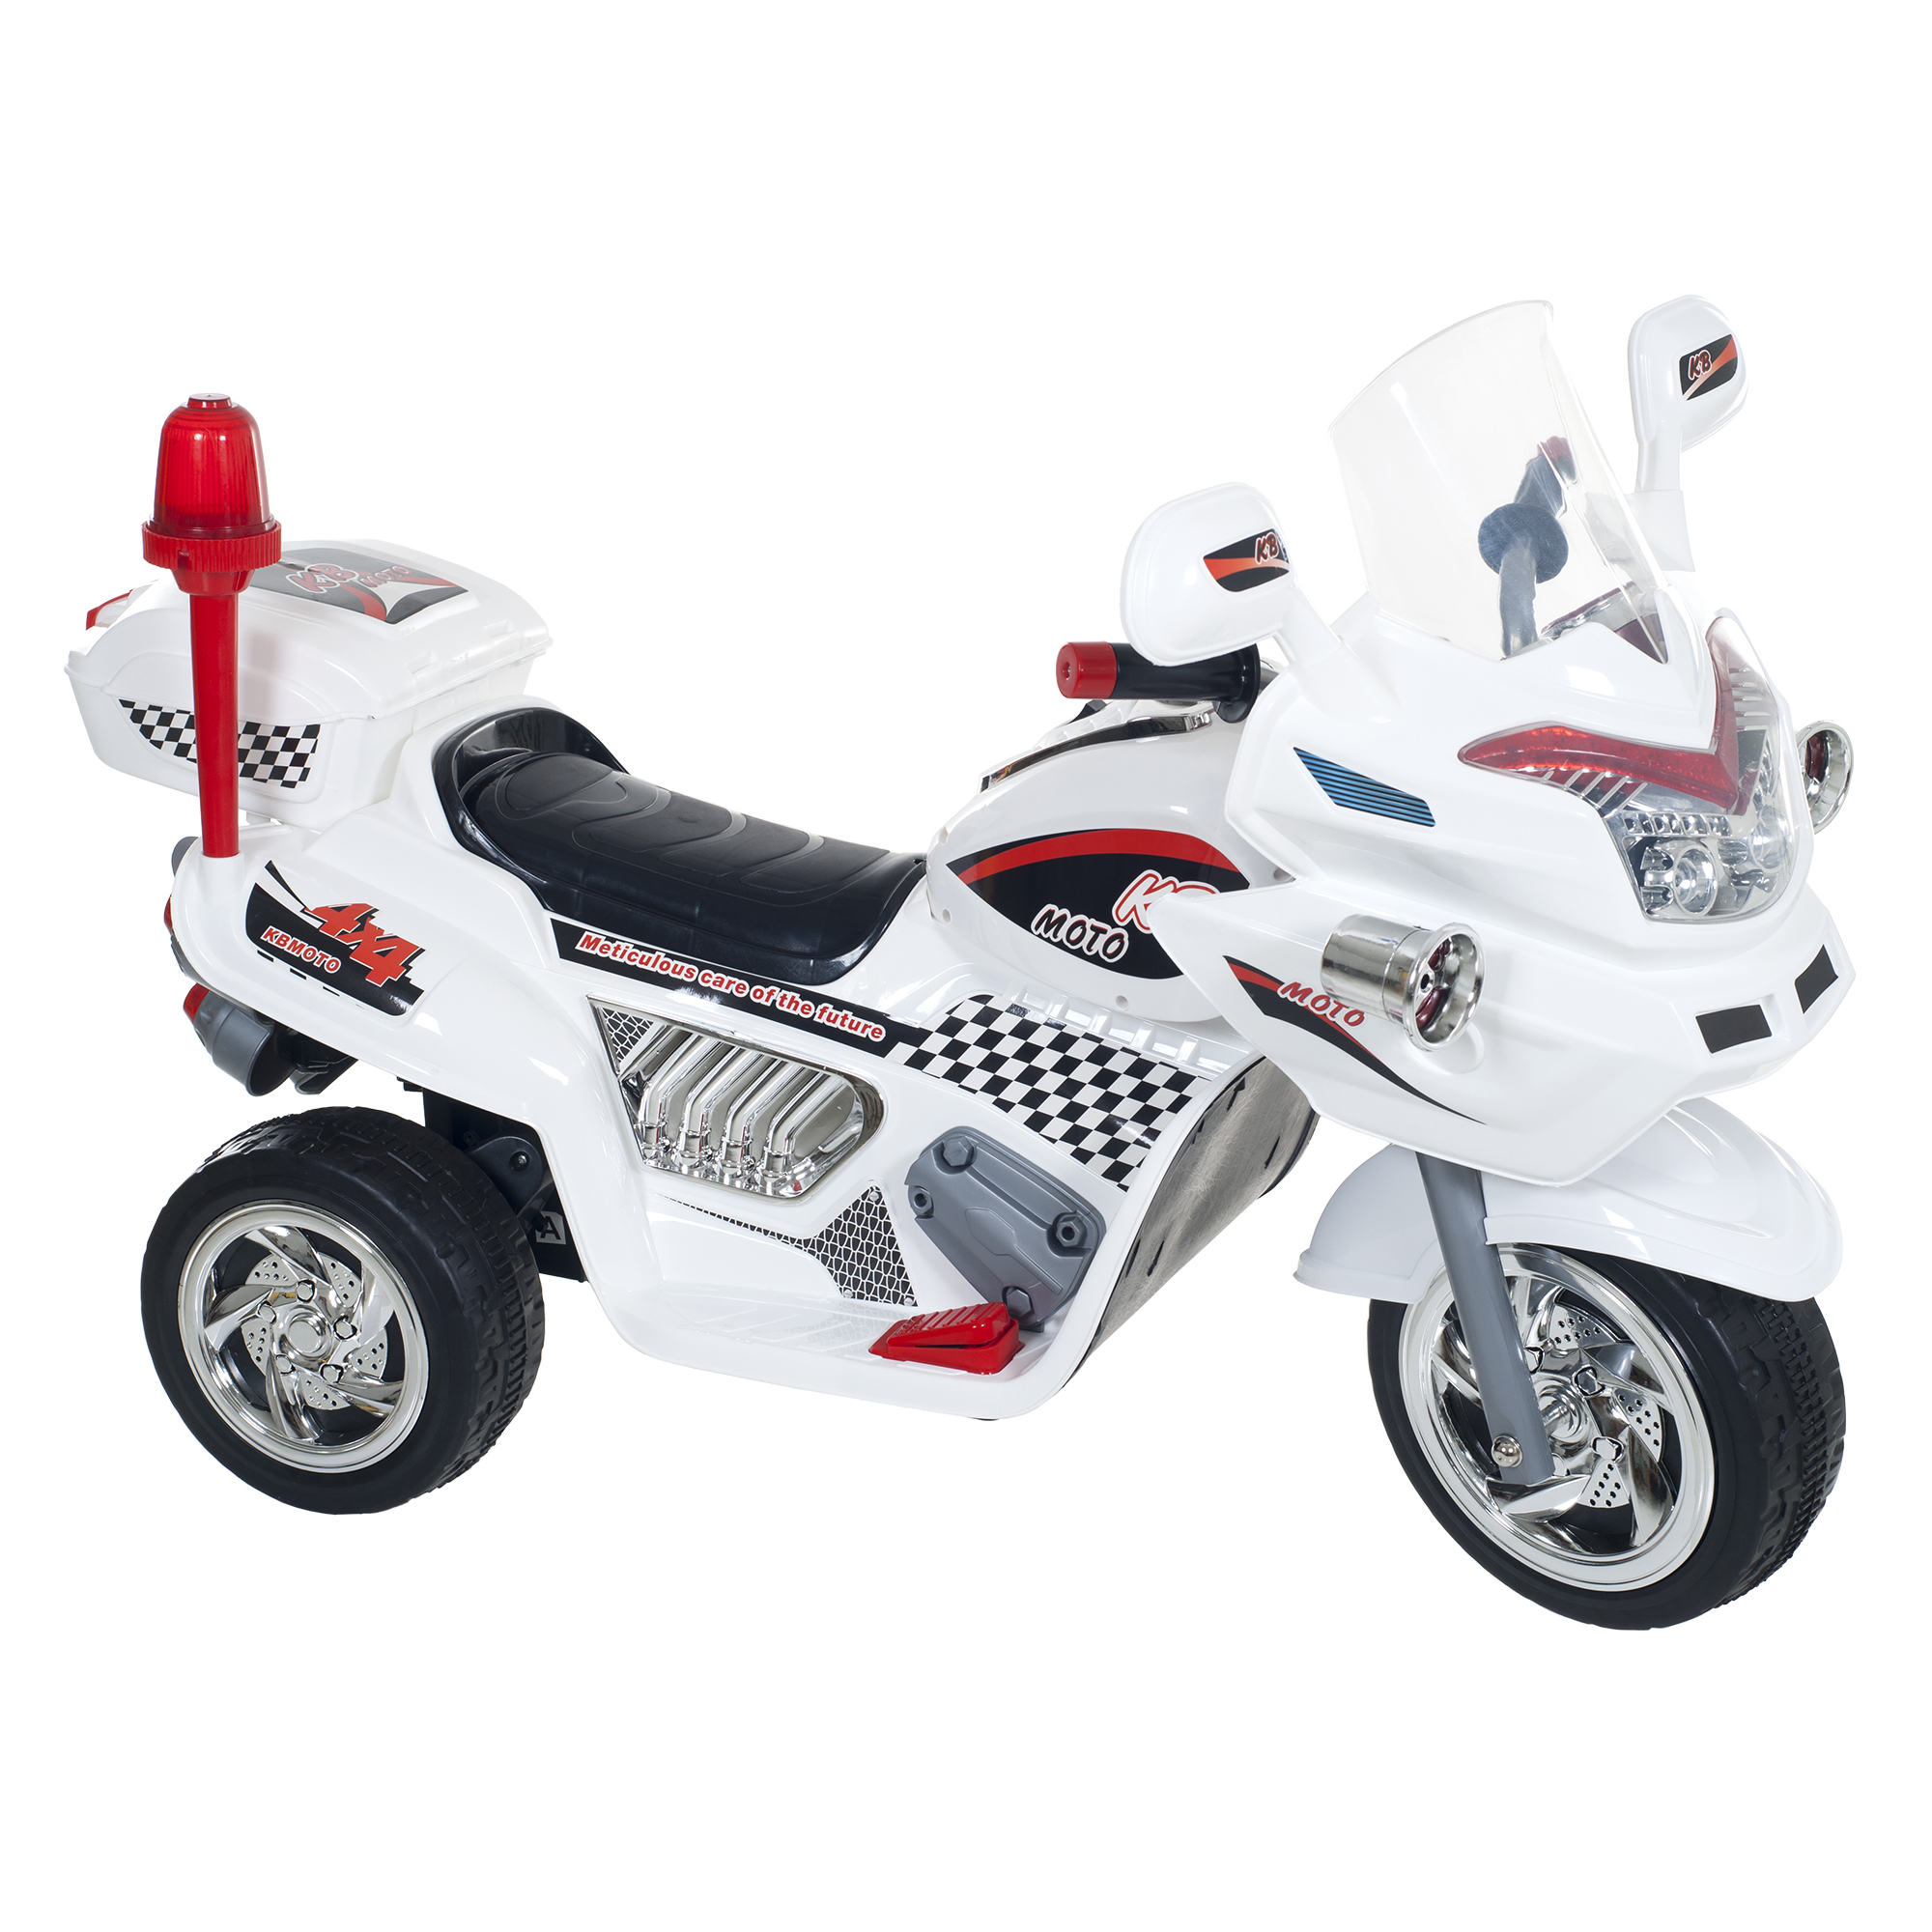 Ride on Toy, 3 Wheel Motorcycle Trike for Kids, Battery Powered Ride On Toy by Hey! Play!... by Trademark Global LLC